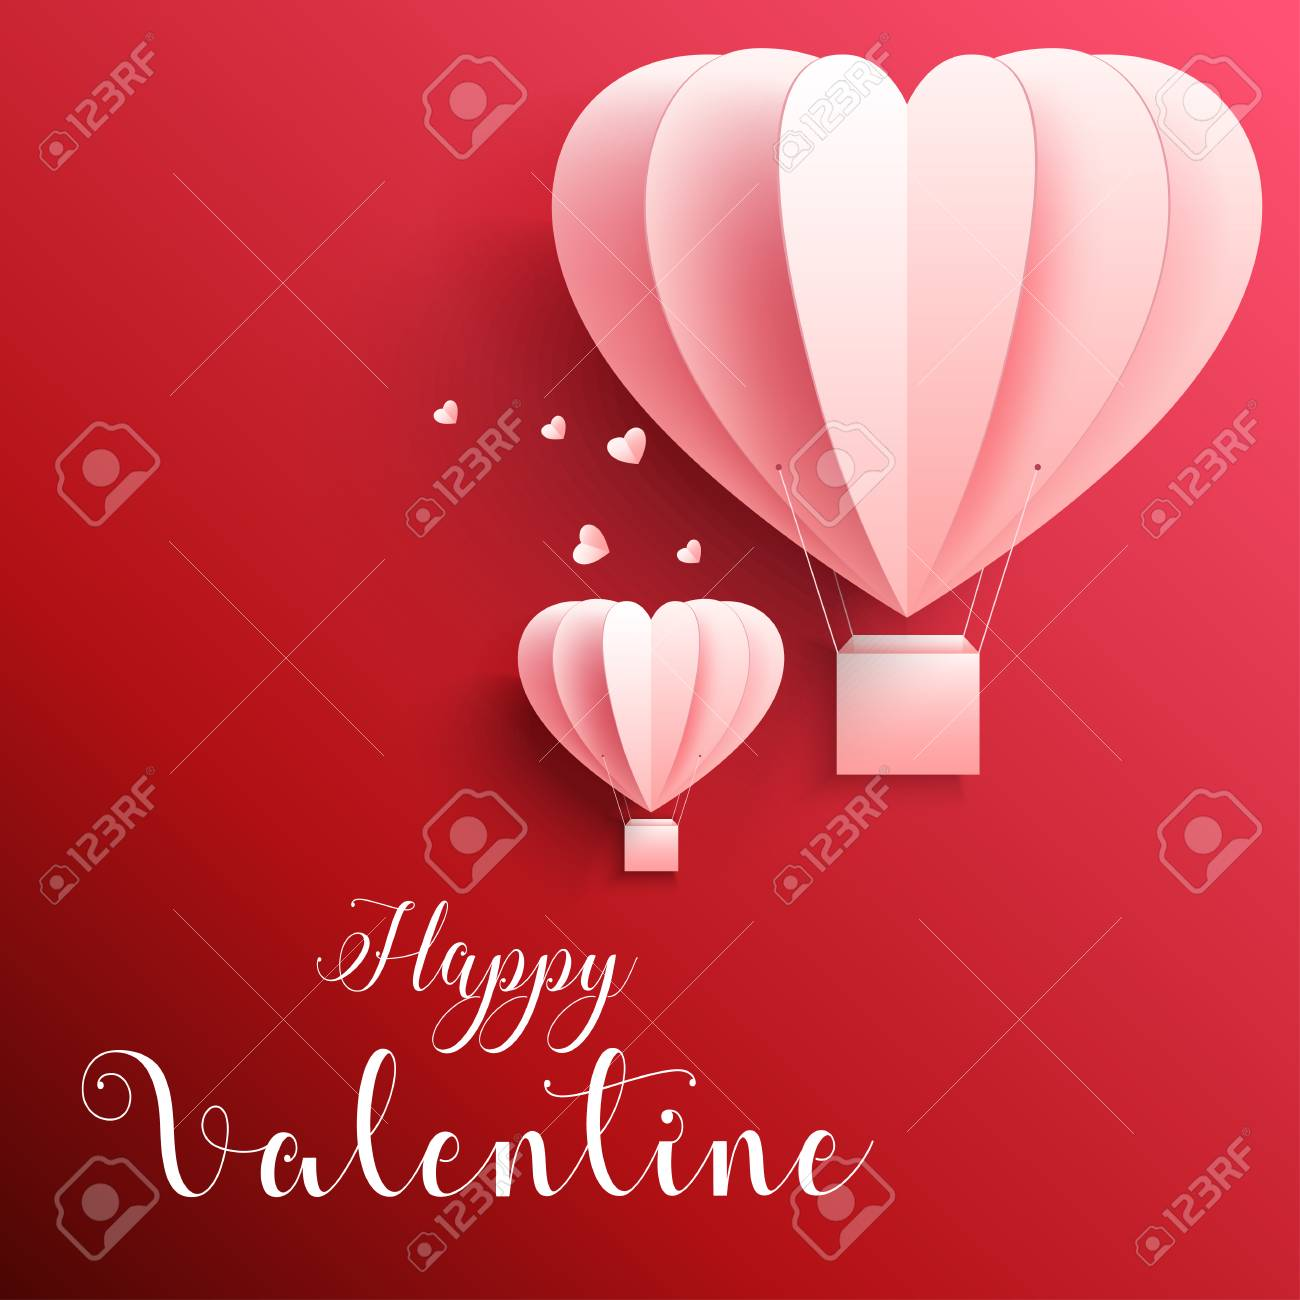 Happy Valentines Day Greetings Card With Realistic Paper Cut